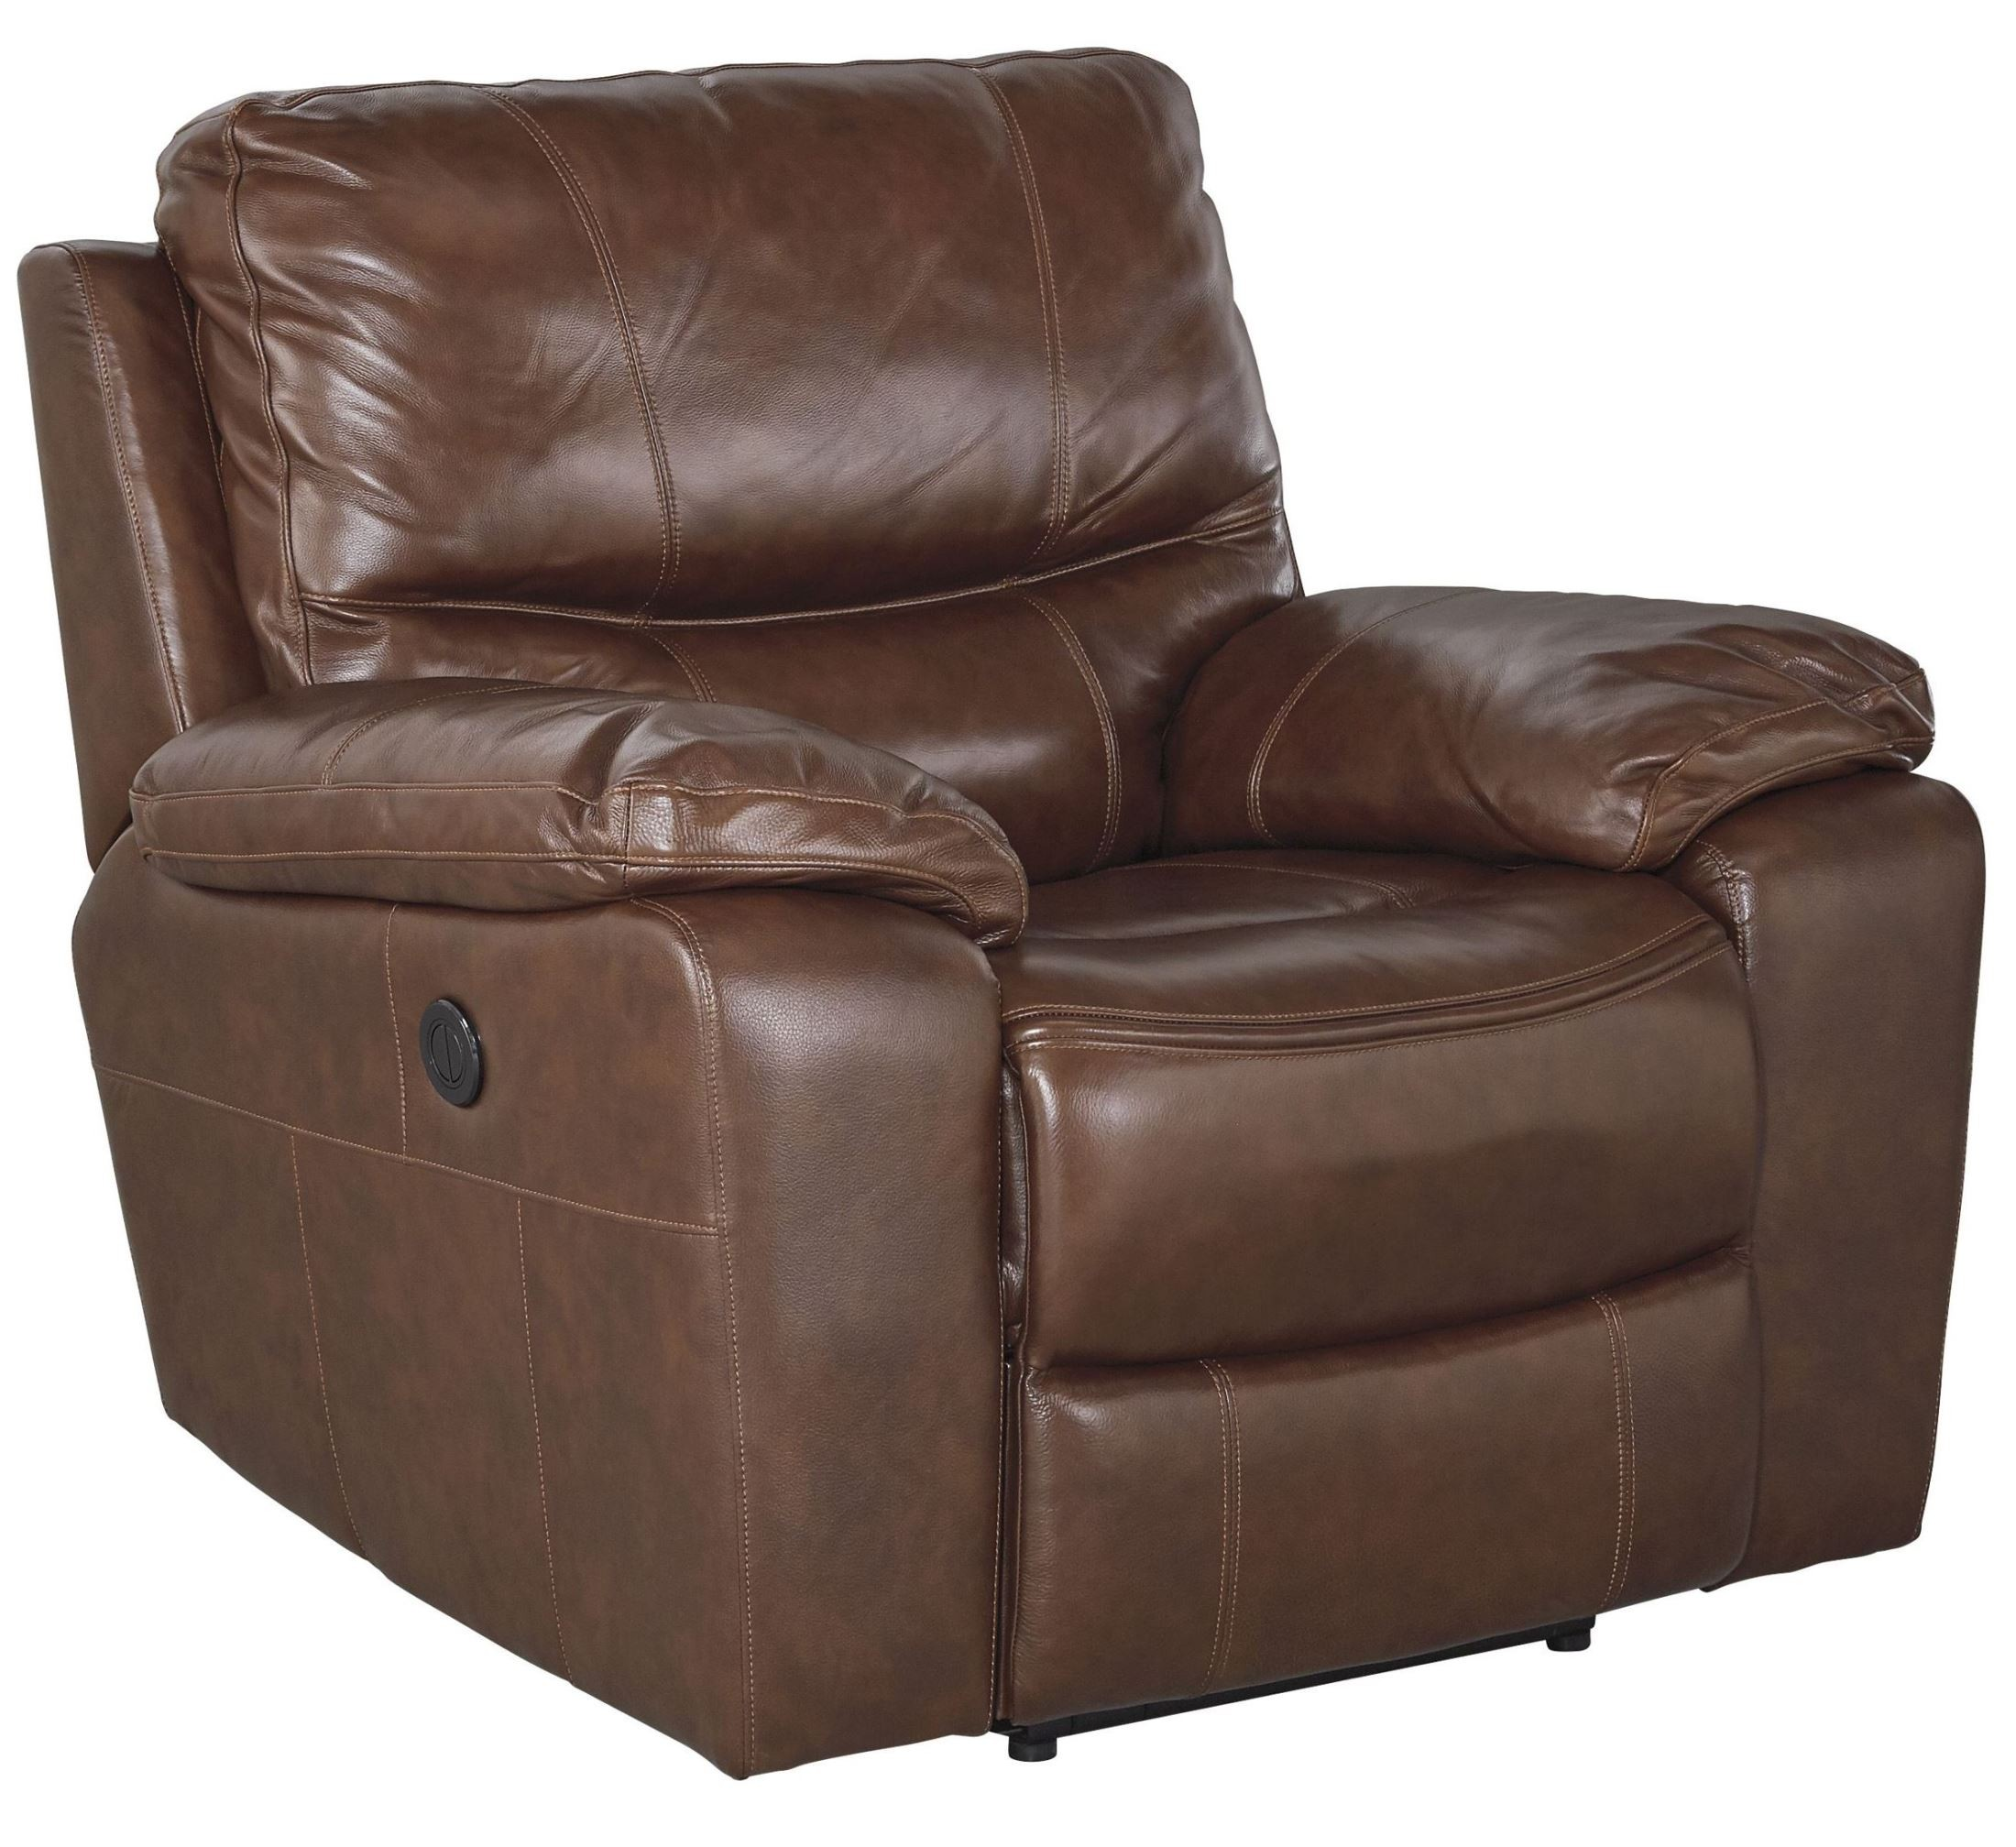 panache sofa set sectionals covers penache saddle reclining living room from ashley